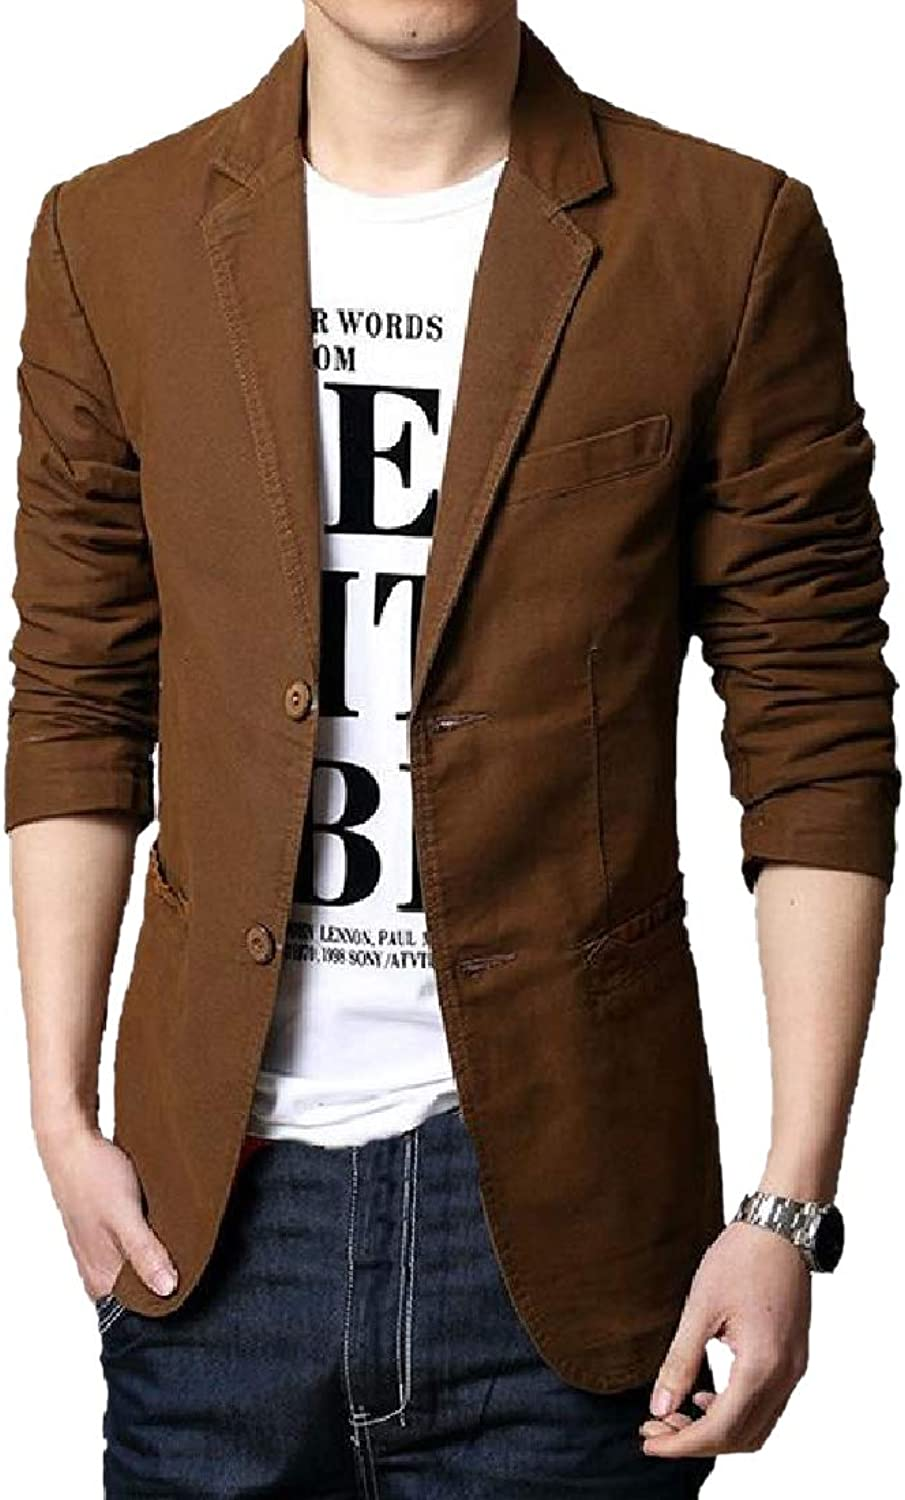 82c51a971d1 Mfasica Mens Business Fit Oversized Oversized Oversized Lapel Two-Button  Blazer Jacket Coat Coffee XL bc34be